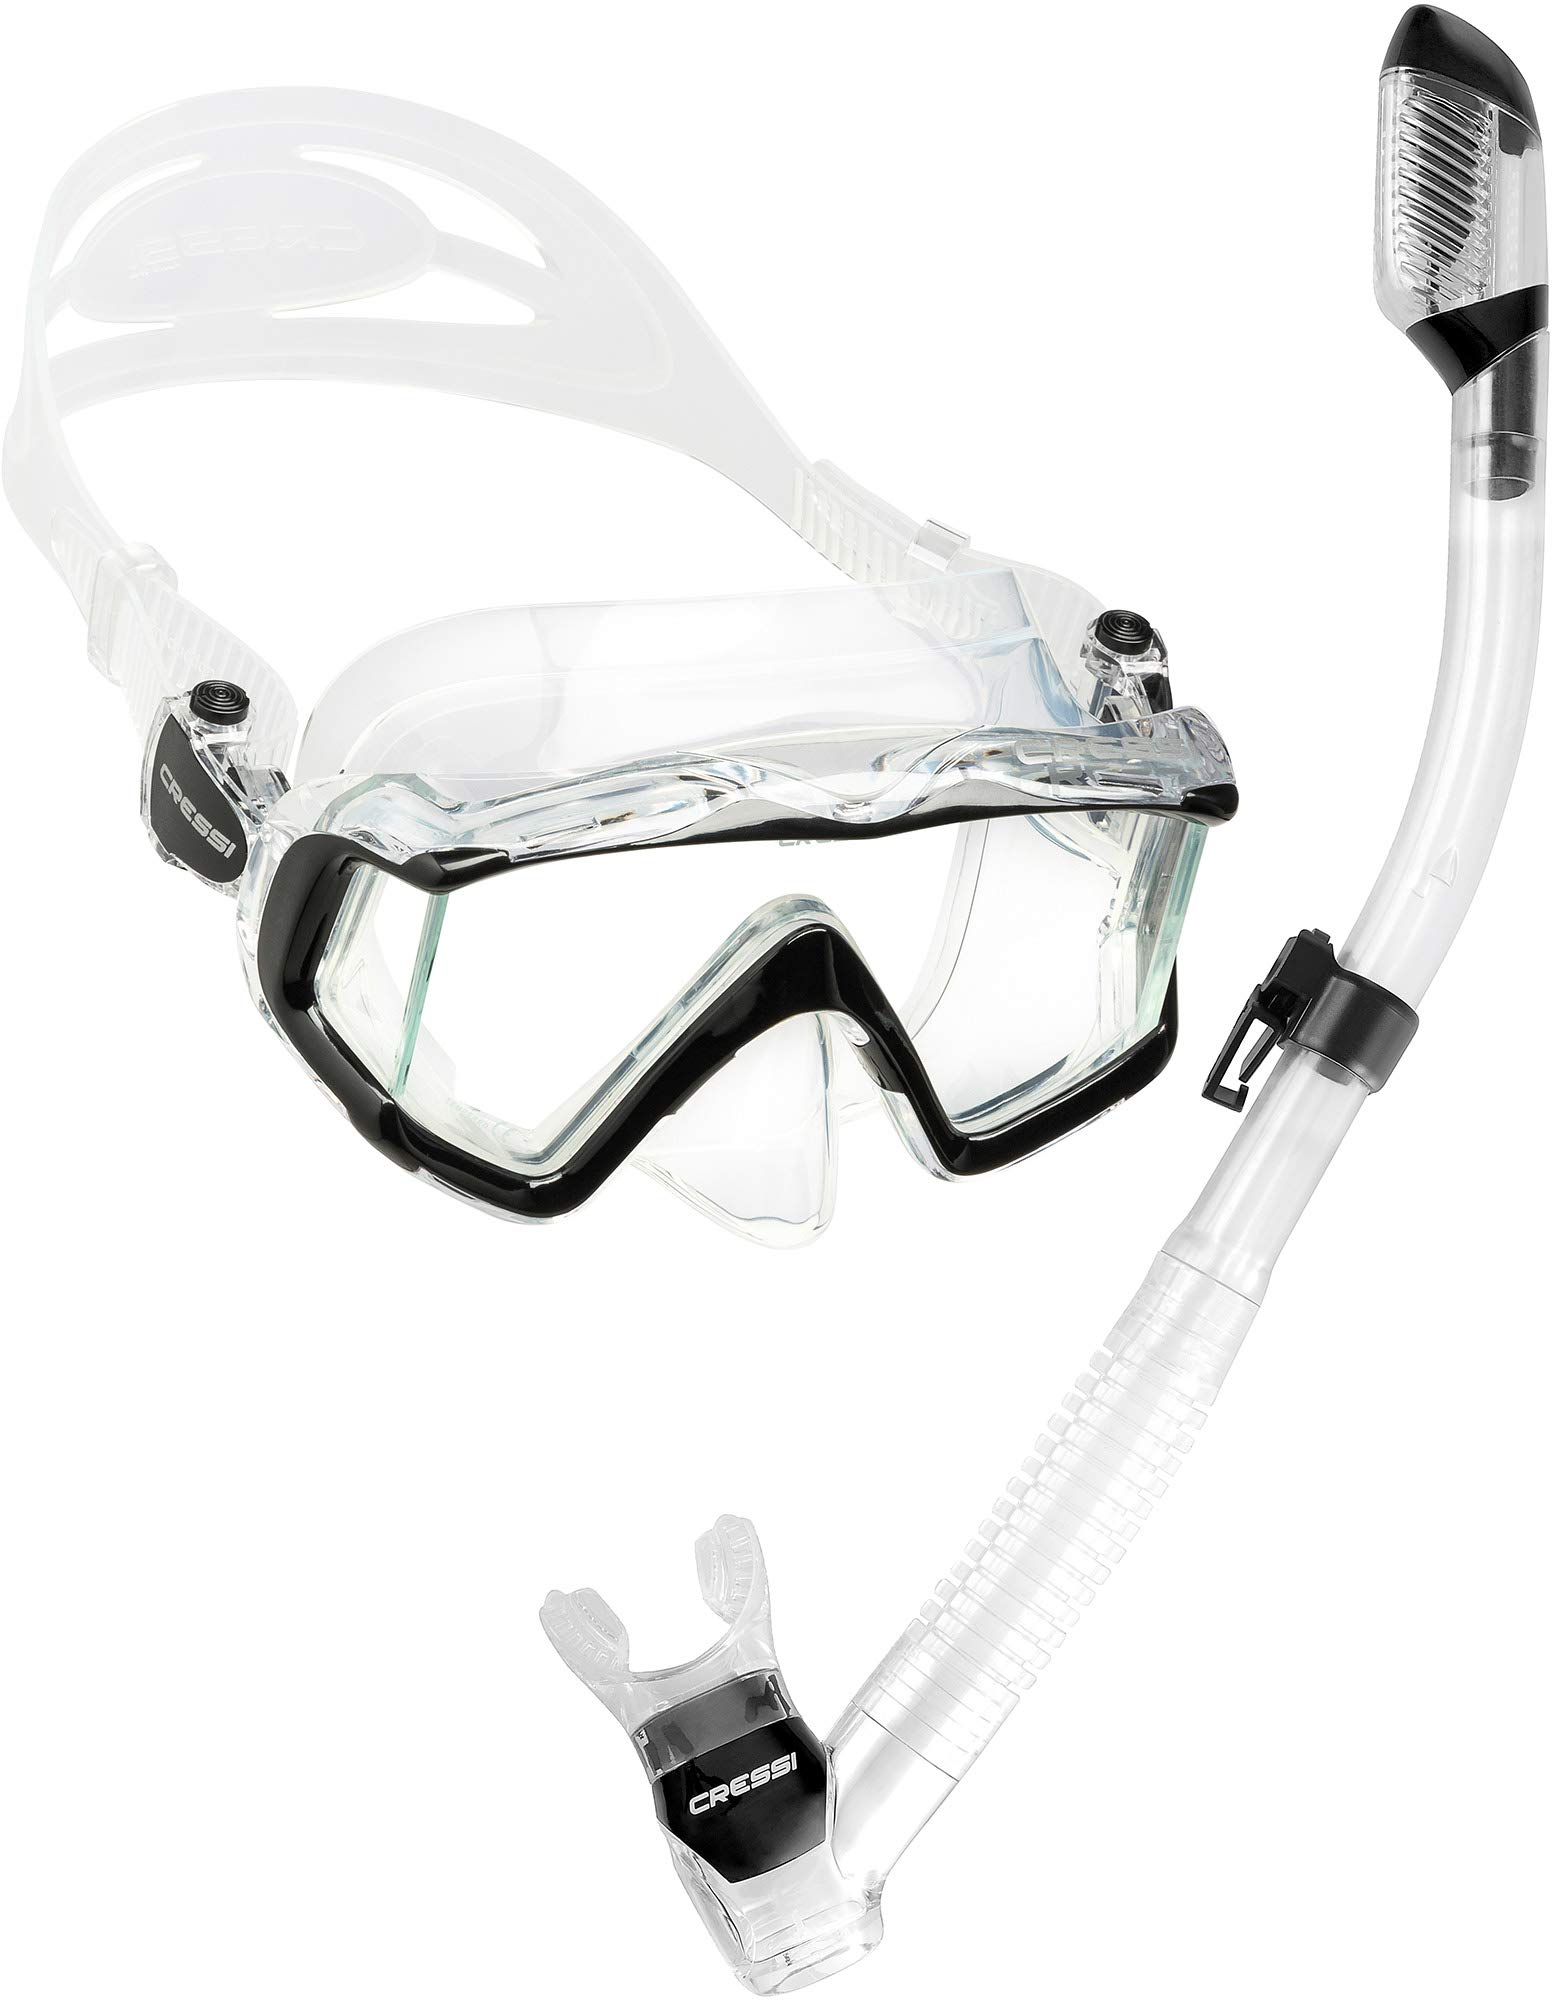 Cressi Pano 3 & Supernova Dry Combo, Clear/Black by Cressi